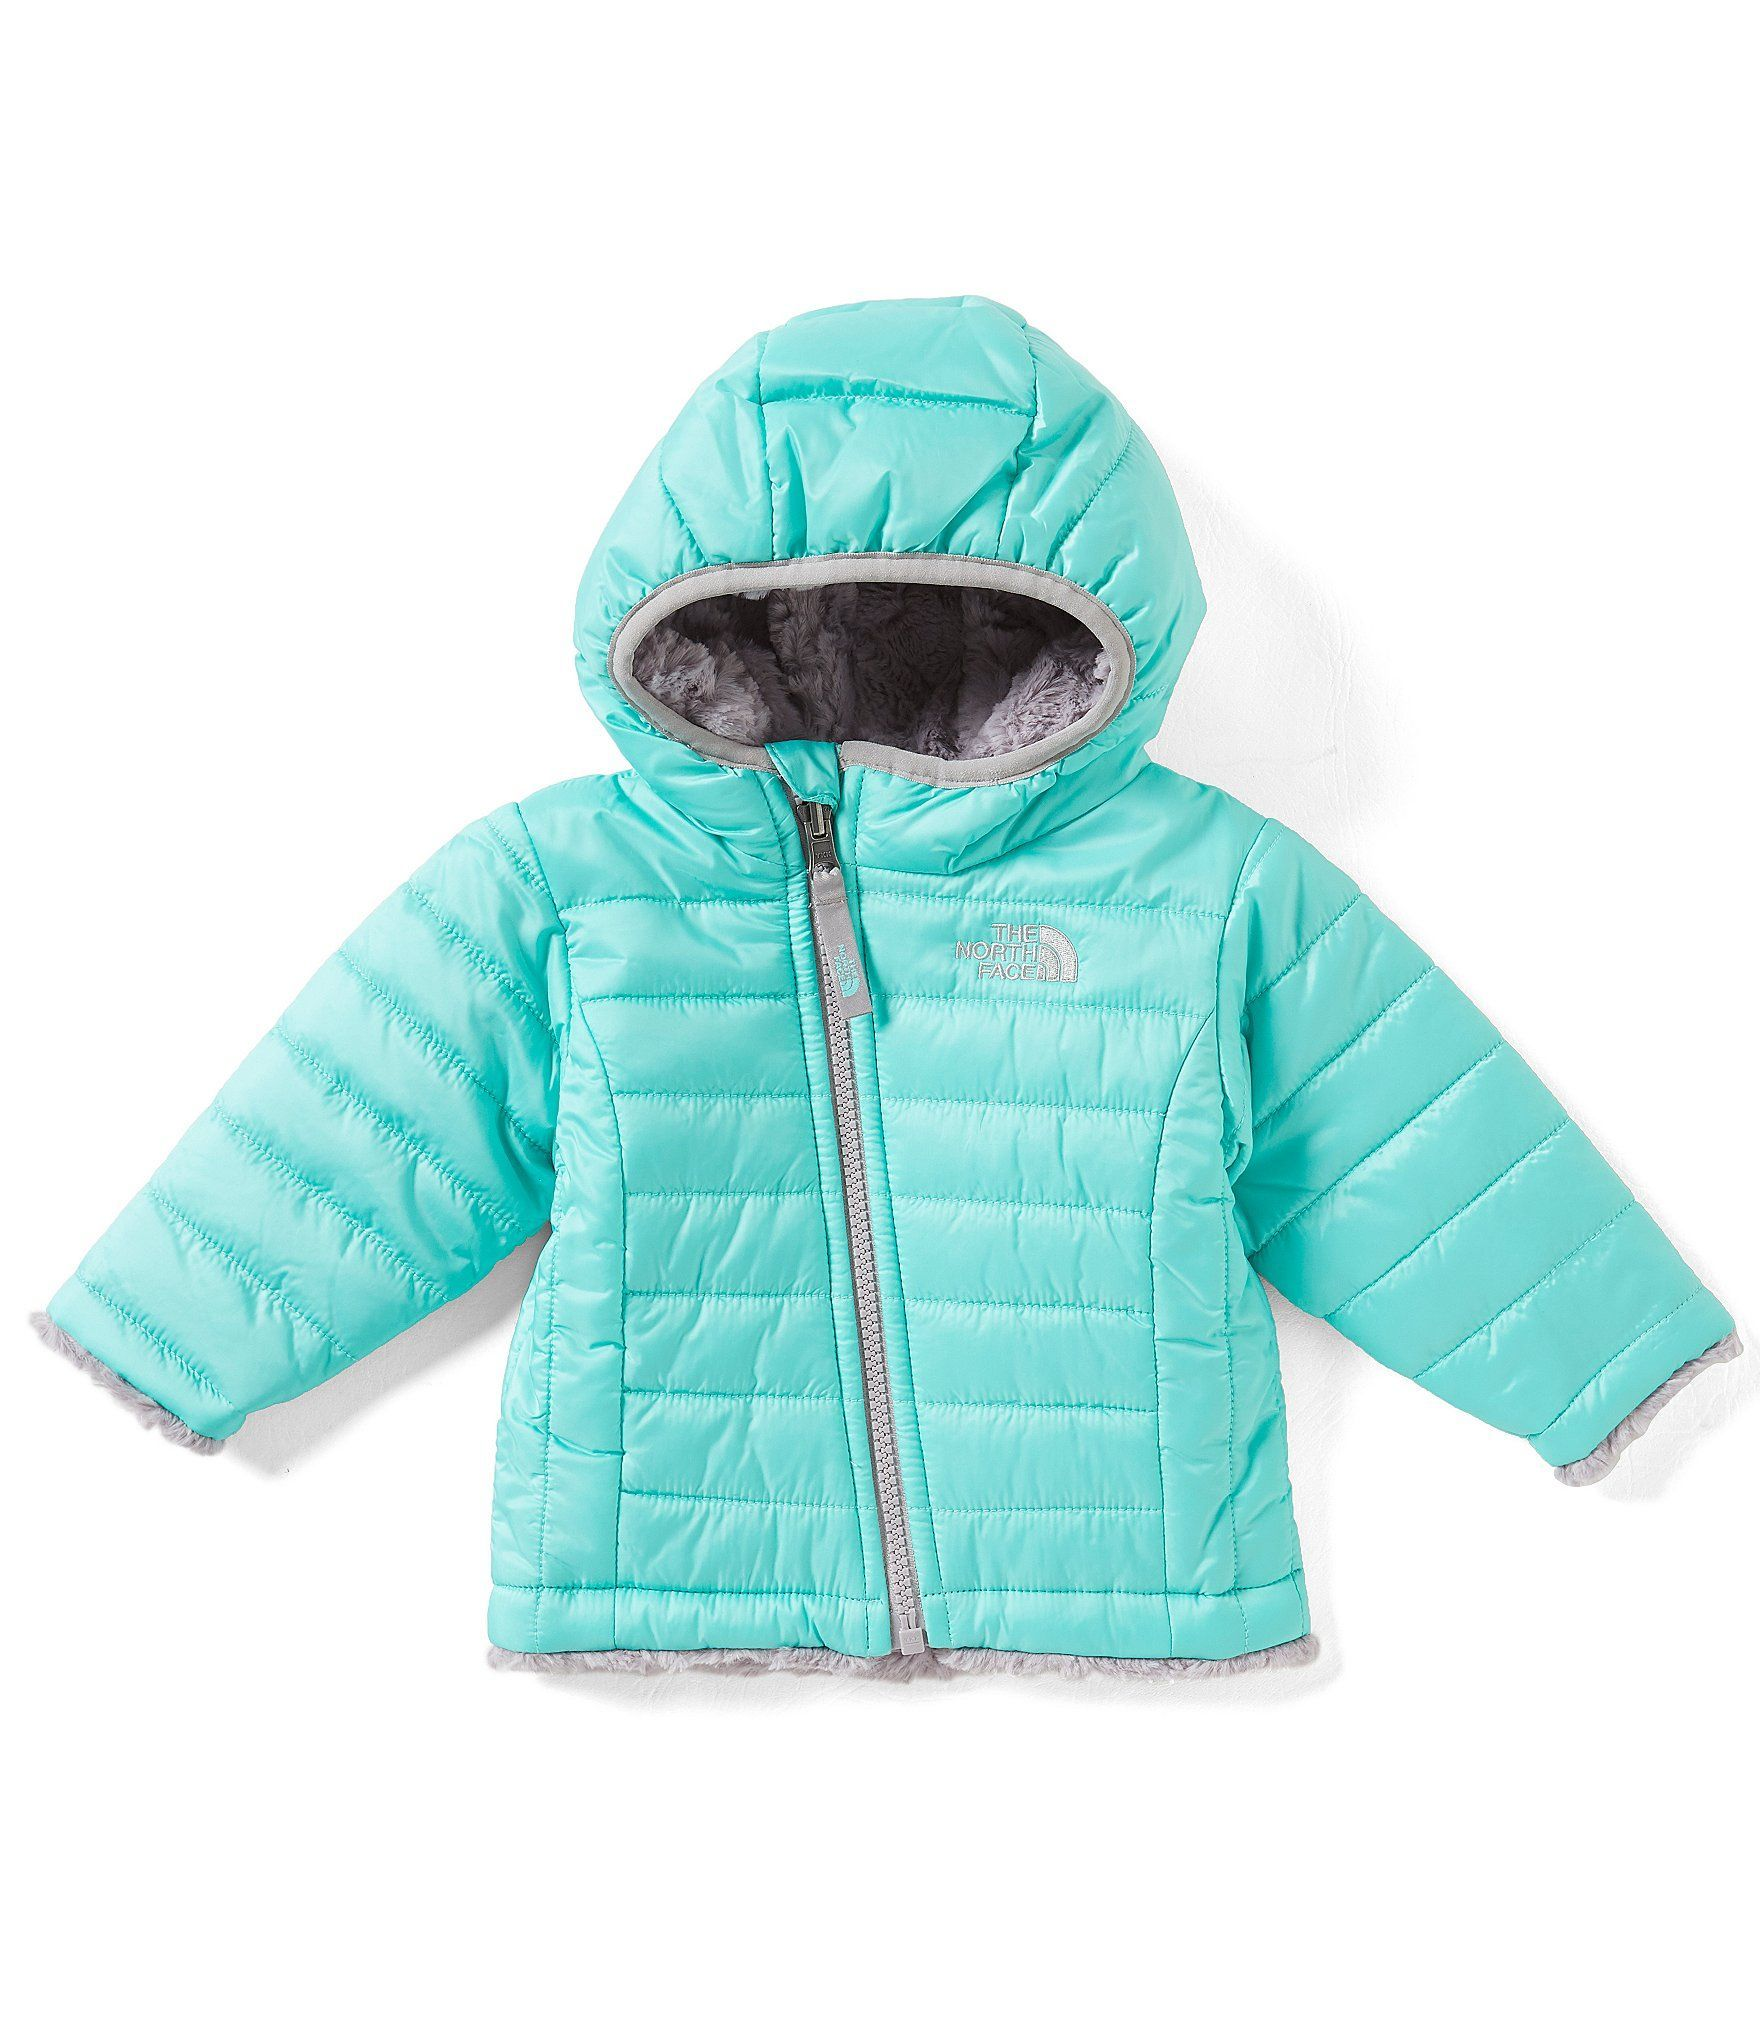 a970d0a42c2f Shop for The North Face Baby Girls 3-24 Months Reversible Mossbud ...